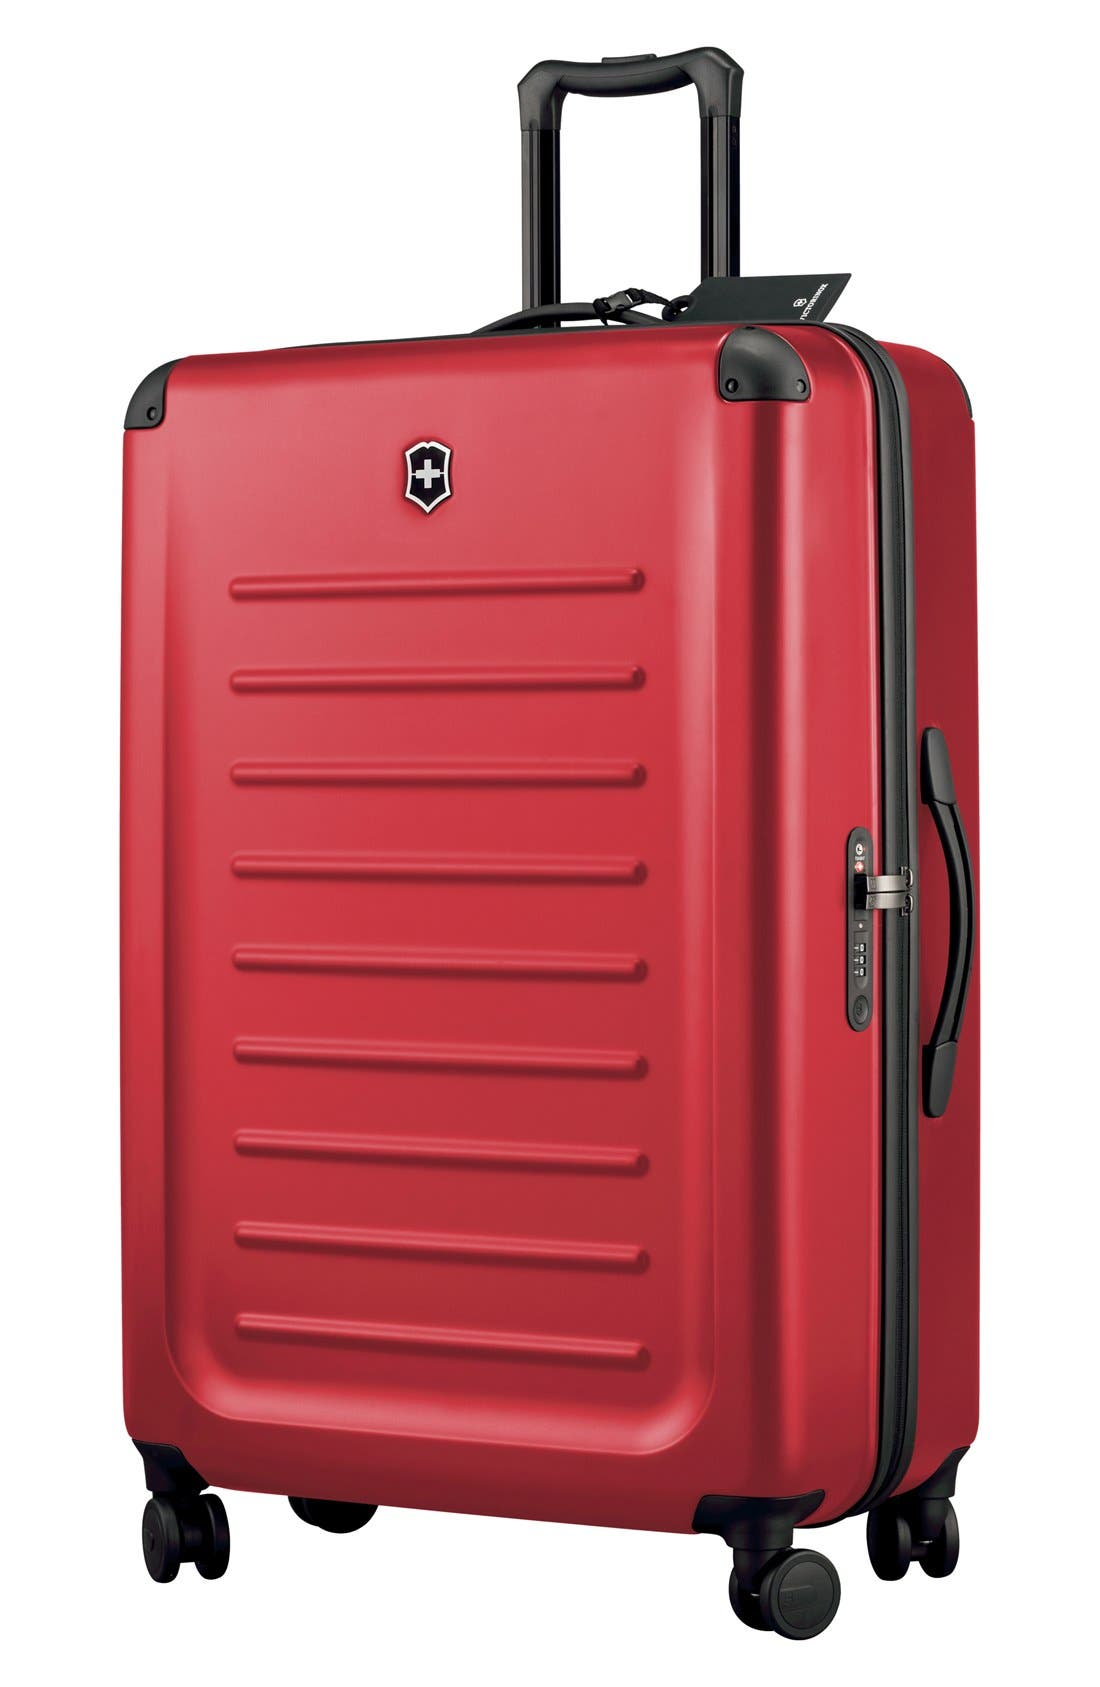 Alternate Image 1 Selected - Victorinox Swiss Army® 'Spectra 2.0' Hard Sided Rolling Travel Suitcase (32 Inch)